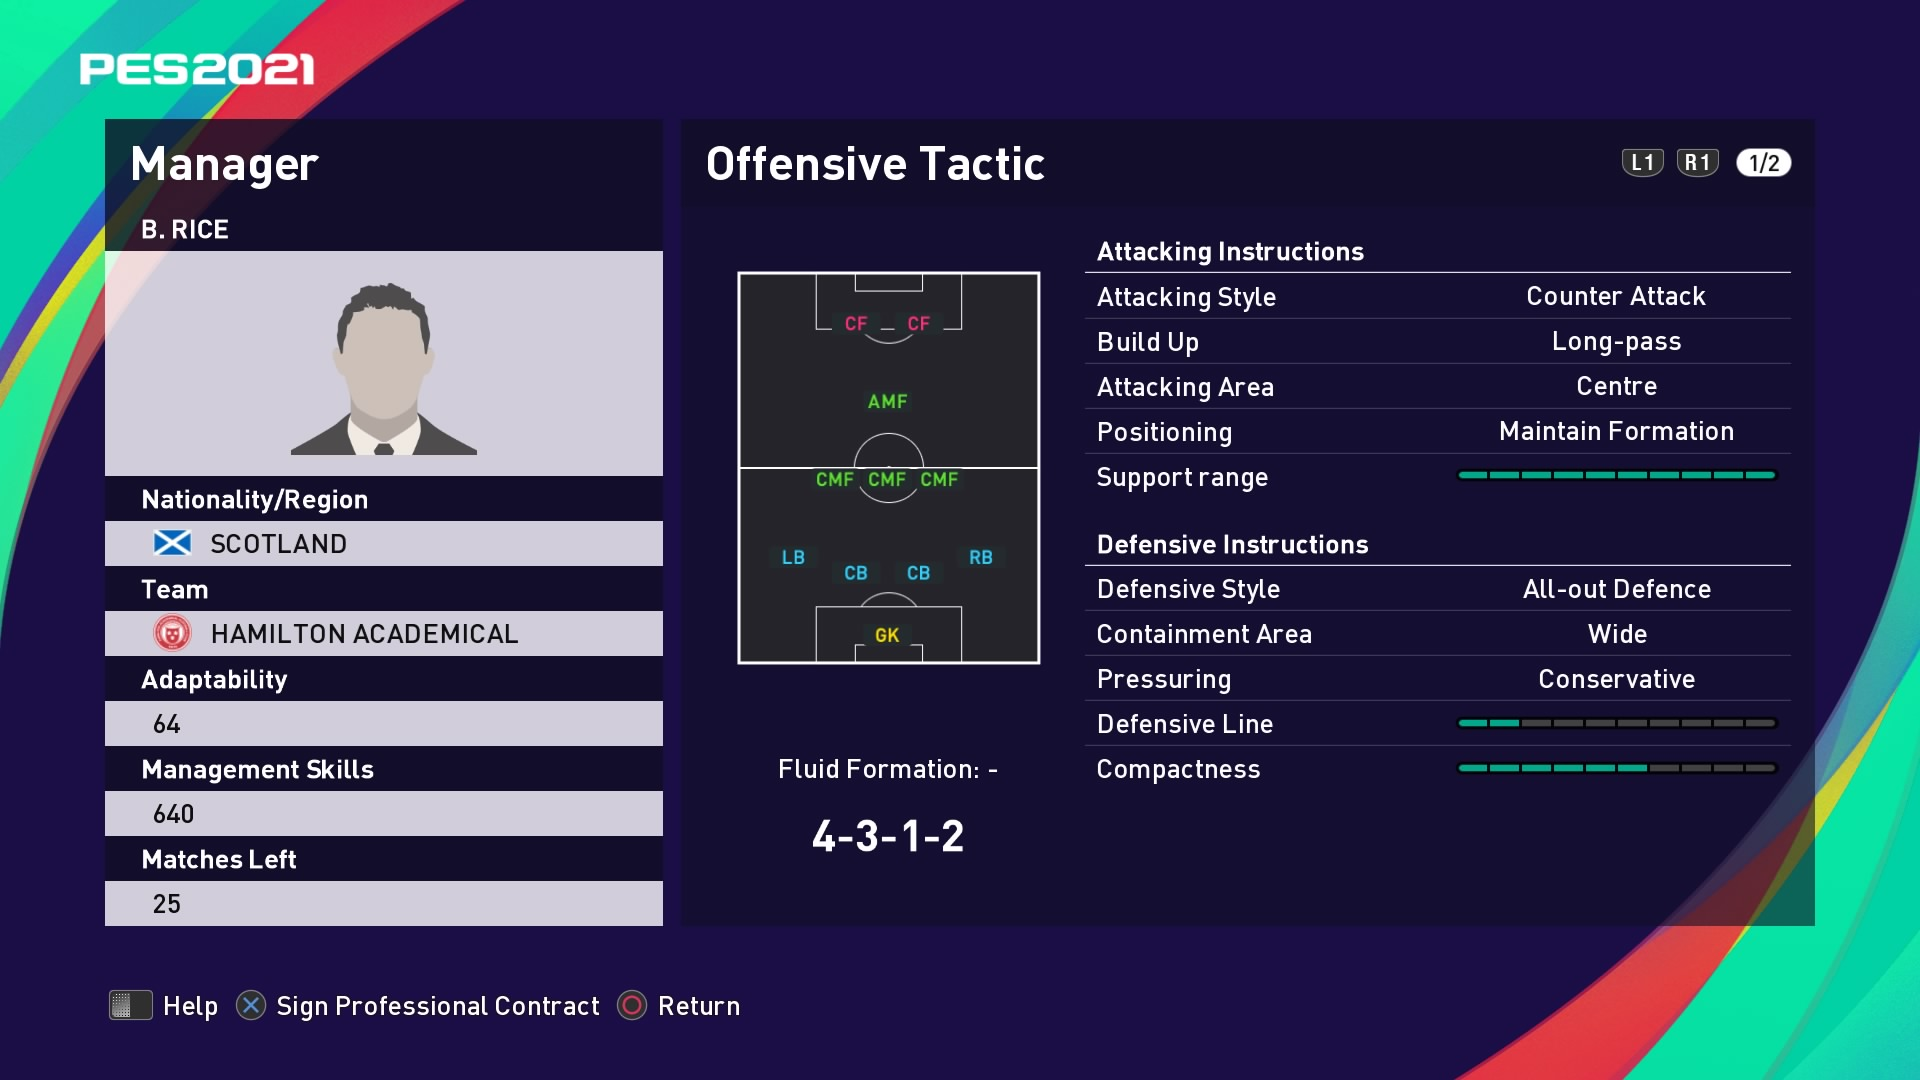 B. Rice (Brian Rice) Offensive Tactic in PES 2021 myClub